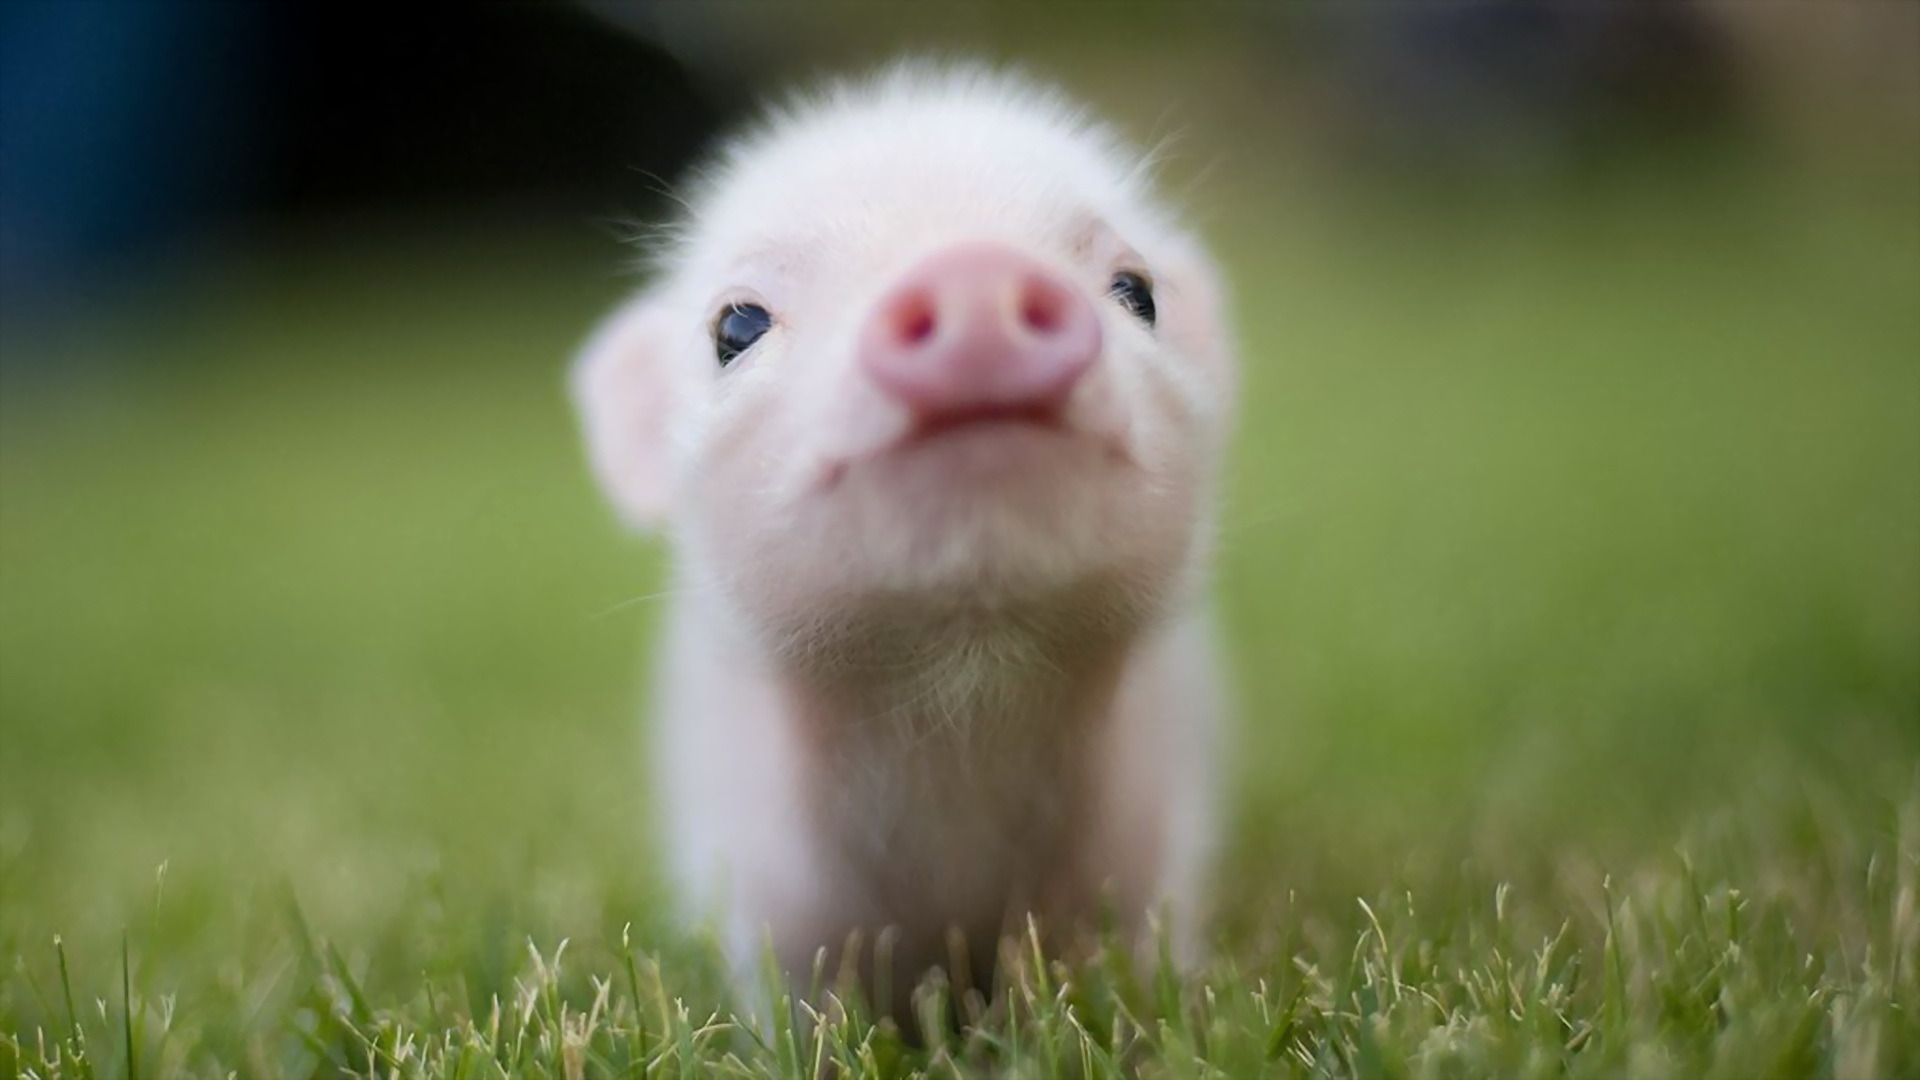 Beautiful Animals Hd Piglet Wallpaper Animal